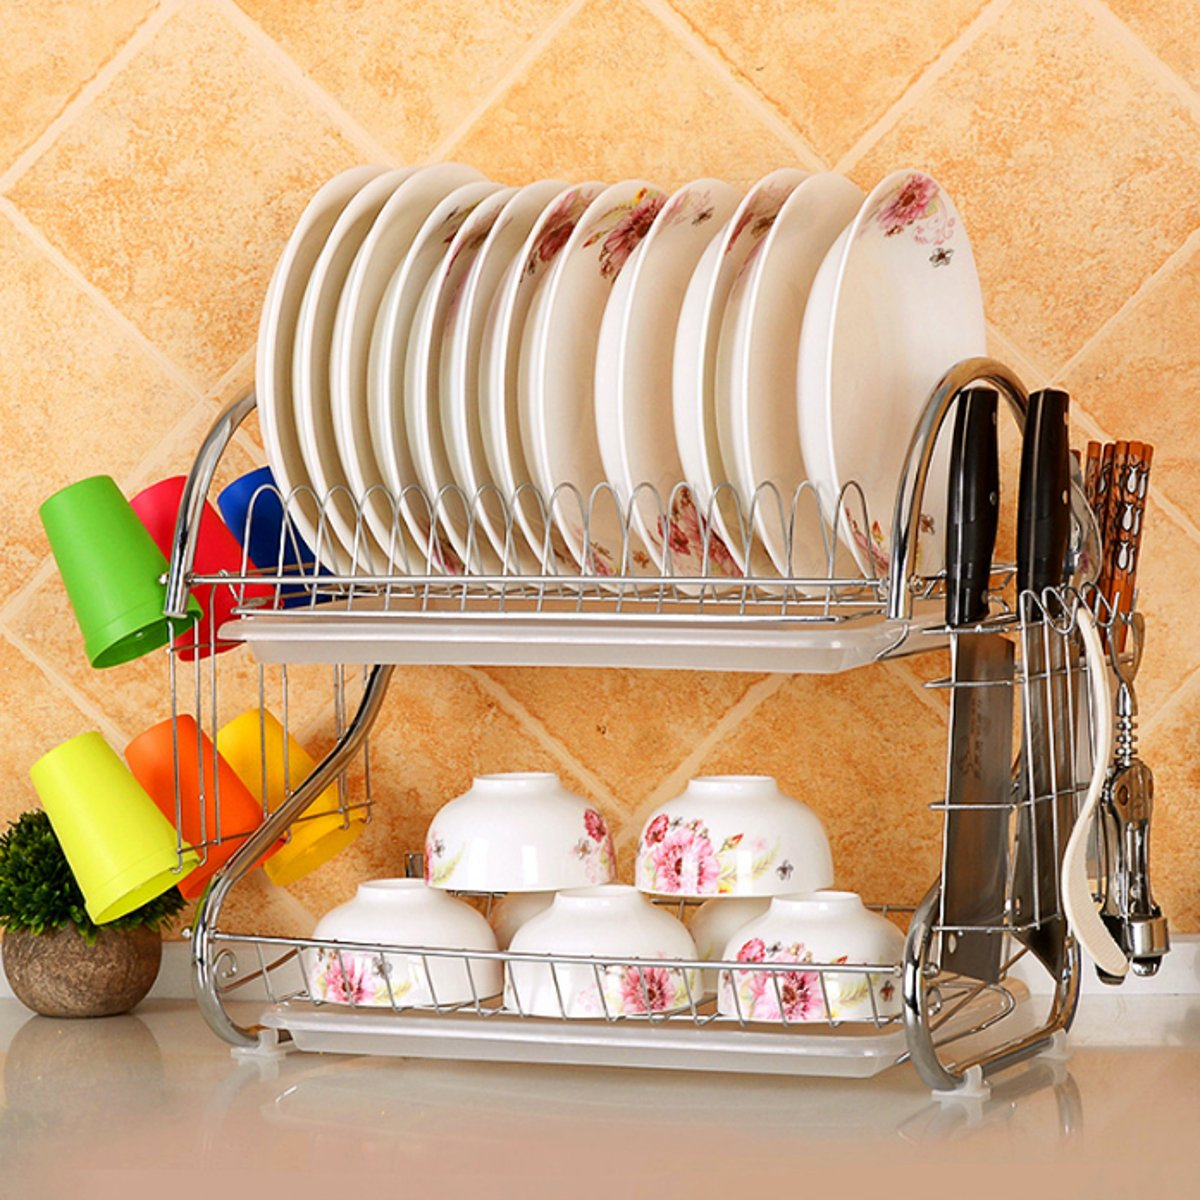 2-Tier Stainless Steel Dish Drying and Storage Rack | Free Shipping